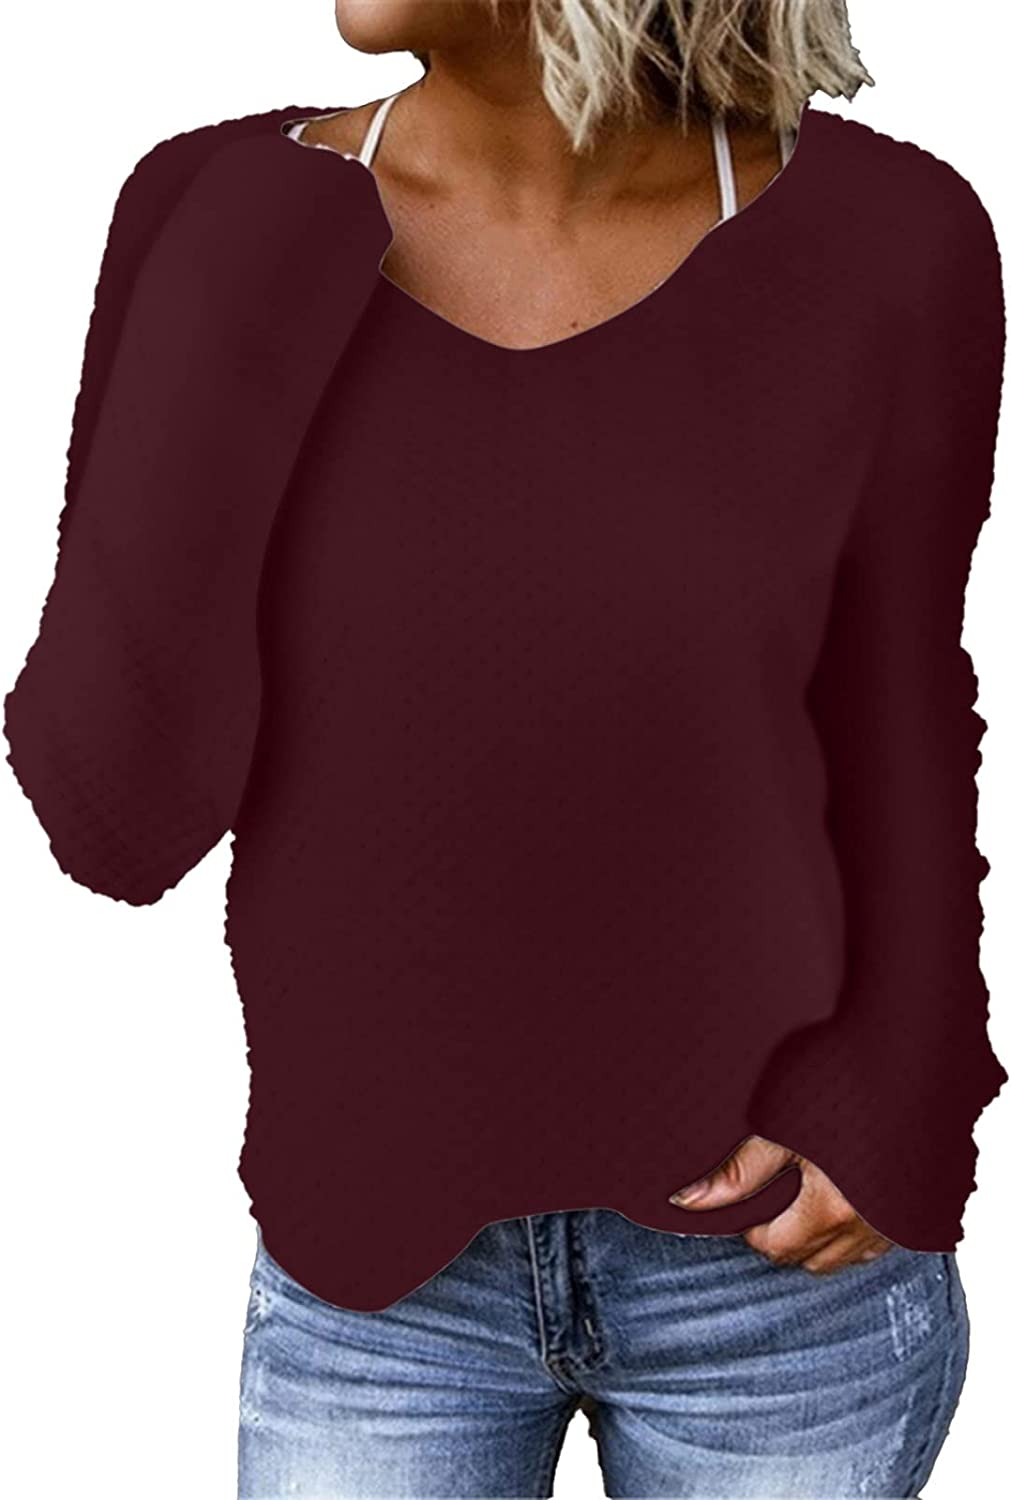 Women's Solid Color Long-Sleeve Round Neck Pullover Tops Casual Warm Plush Sweater